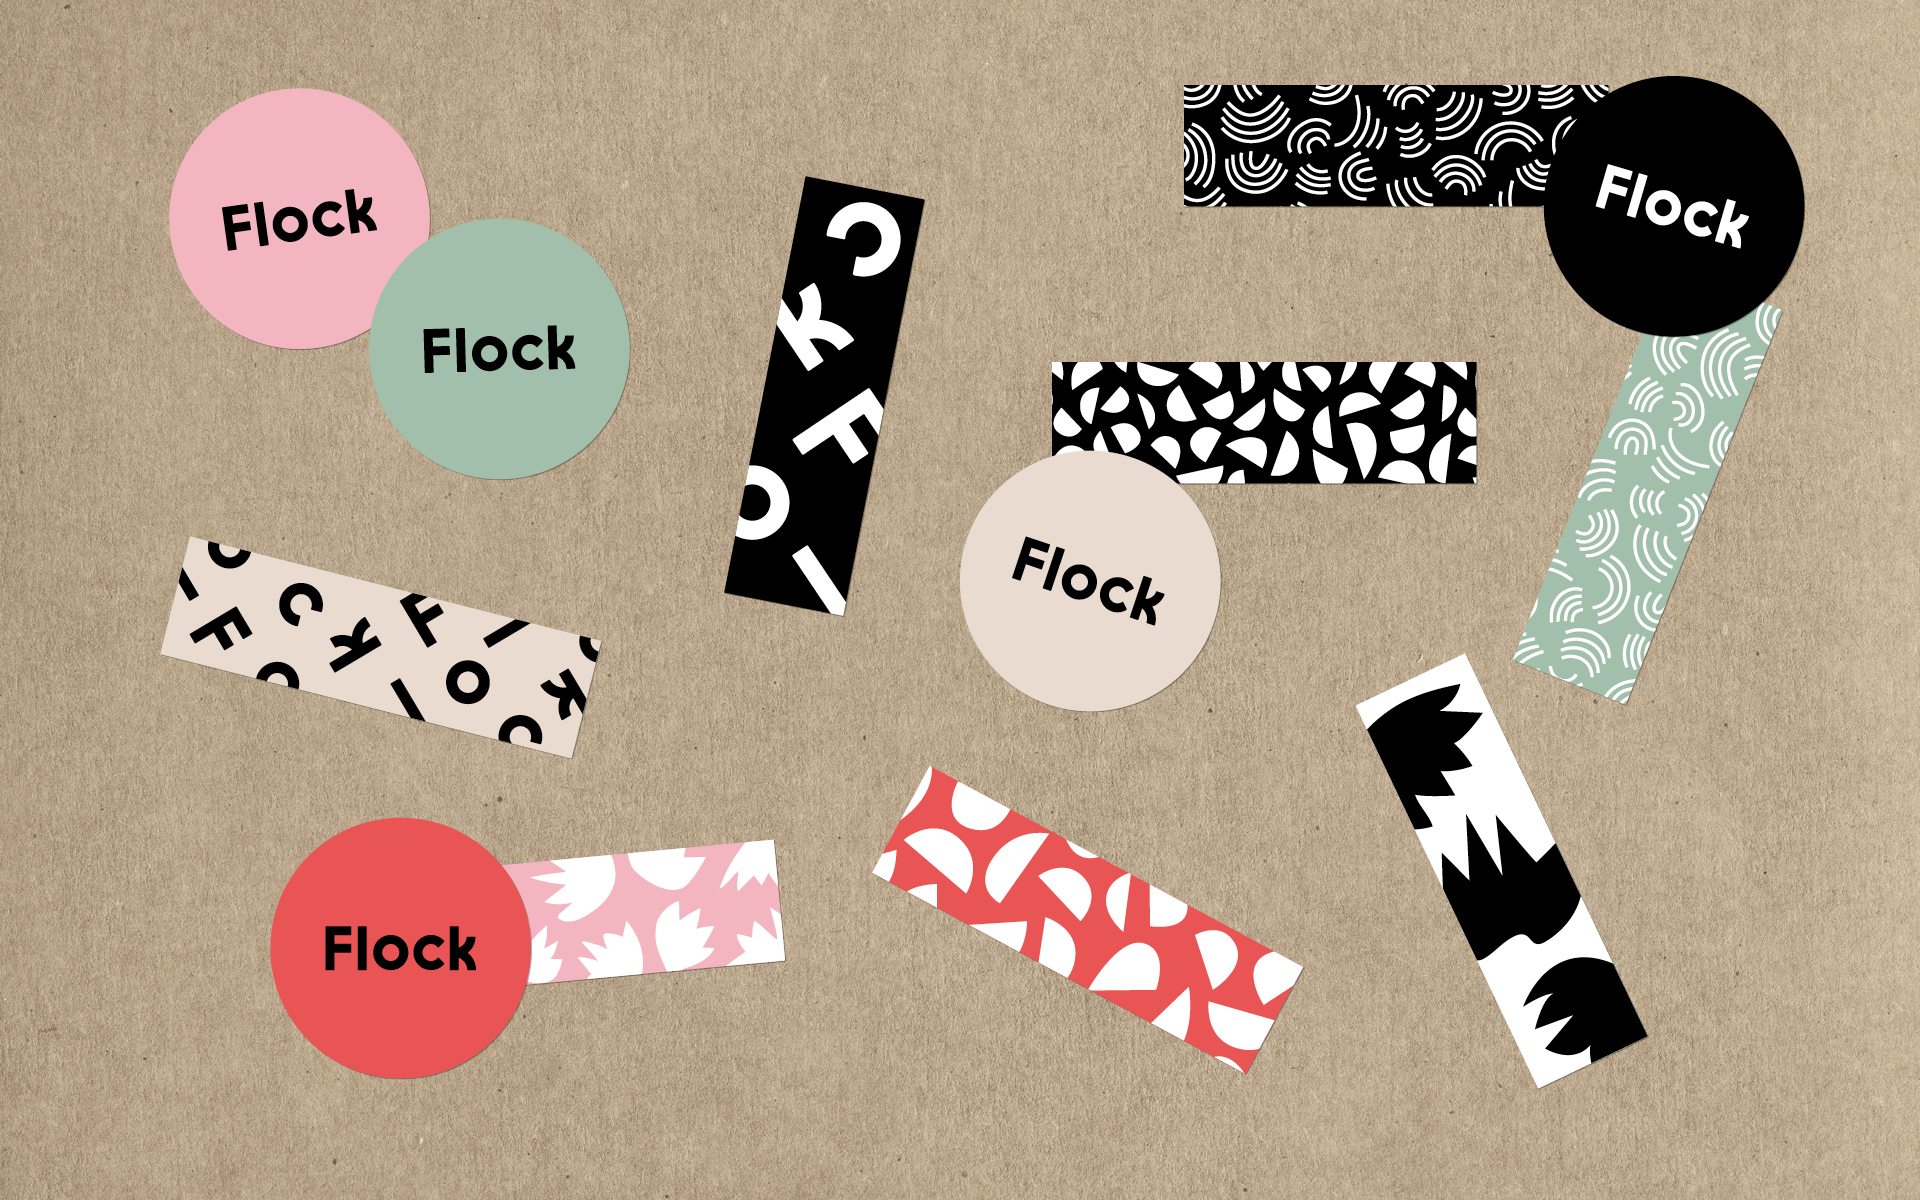 Flock stickers and brand pattern